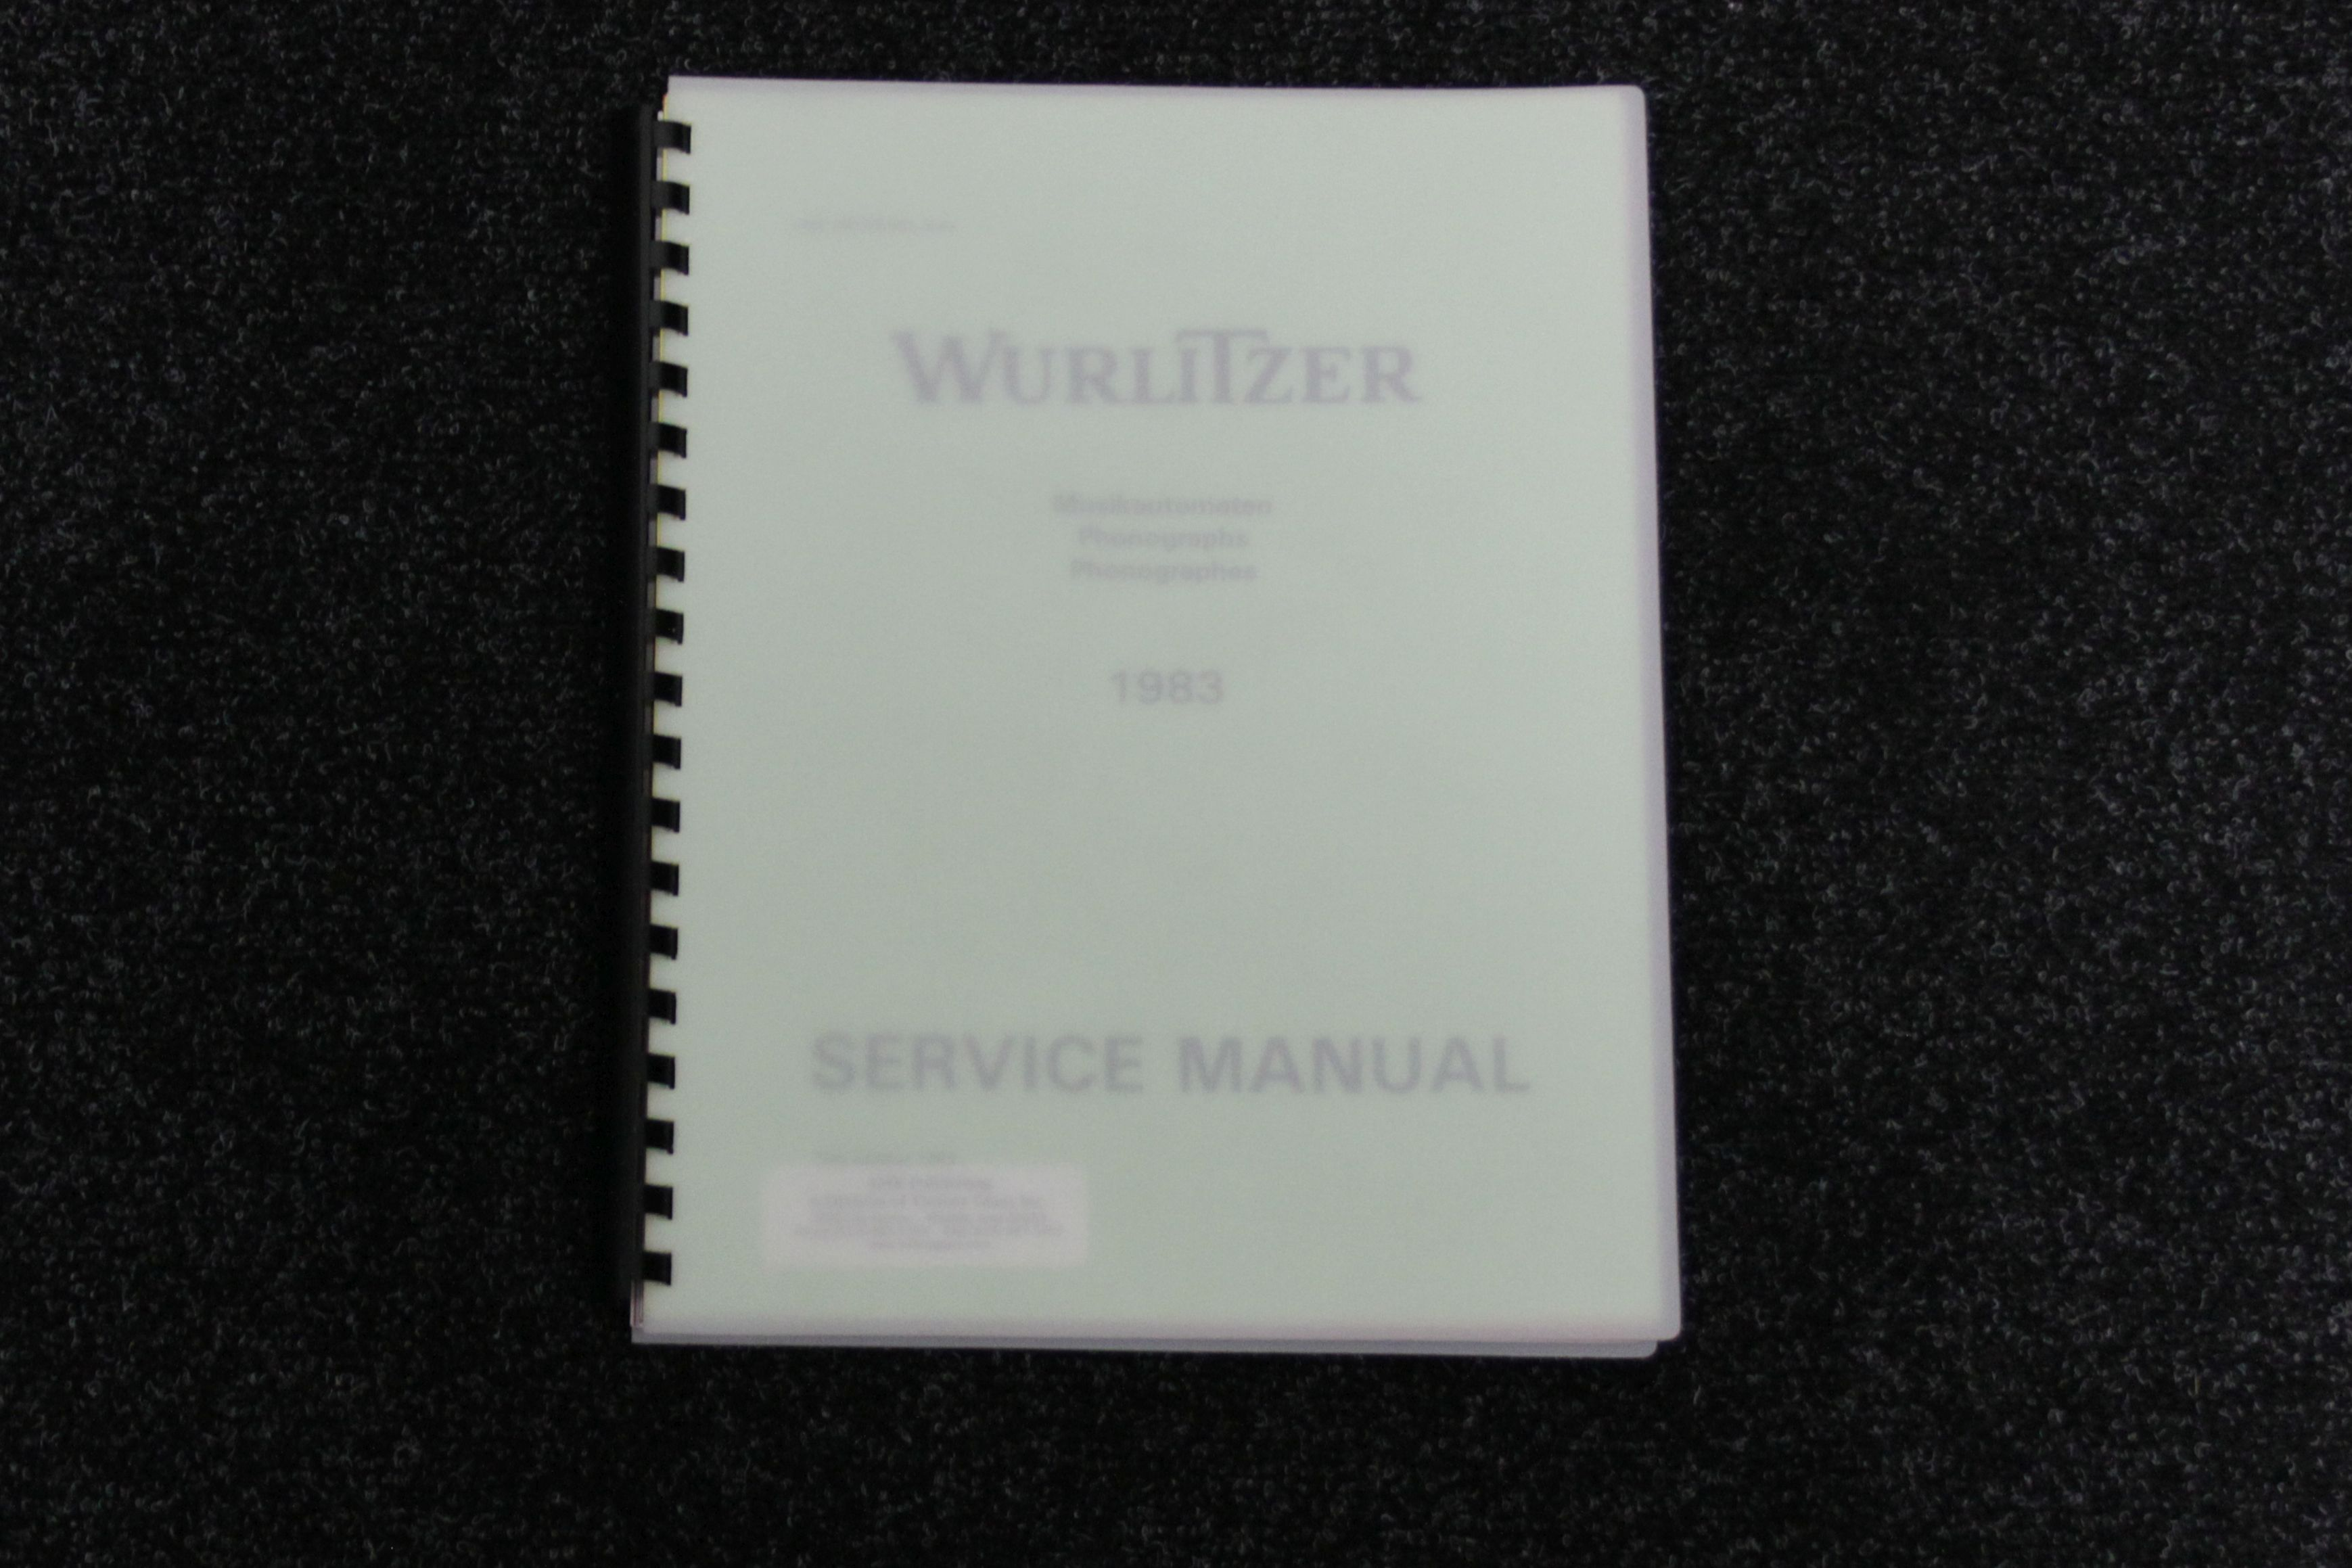 Wurlitzer Service Manual 1983